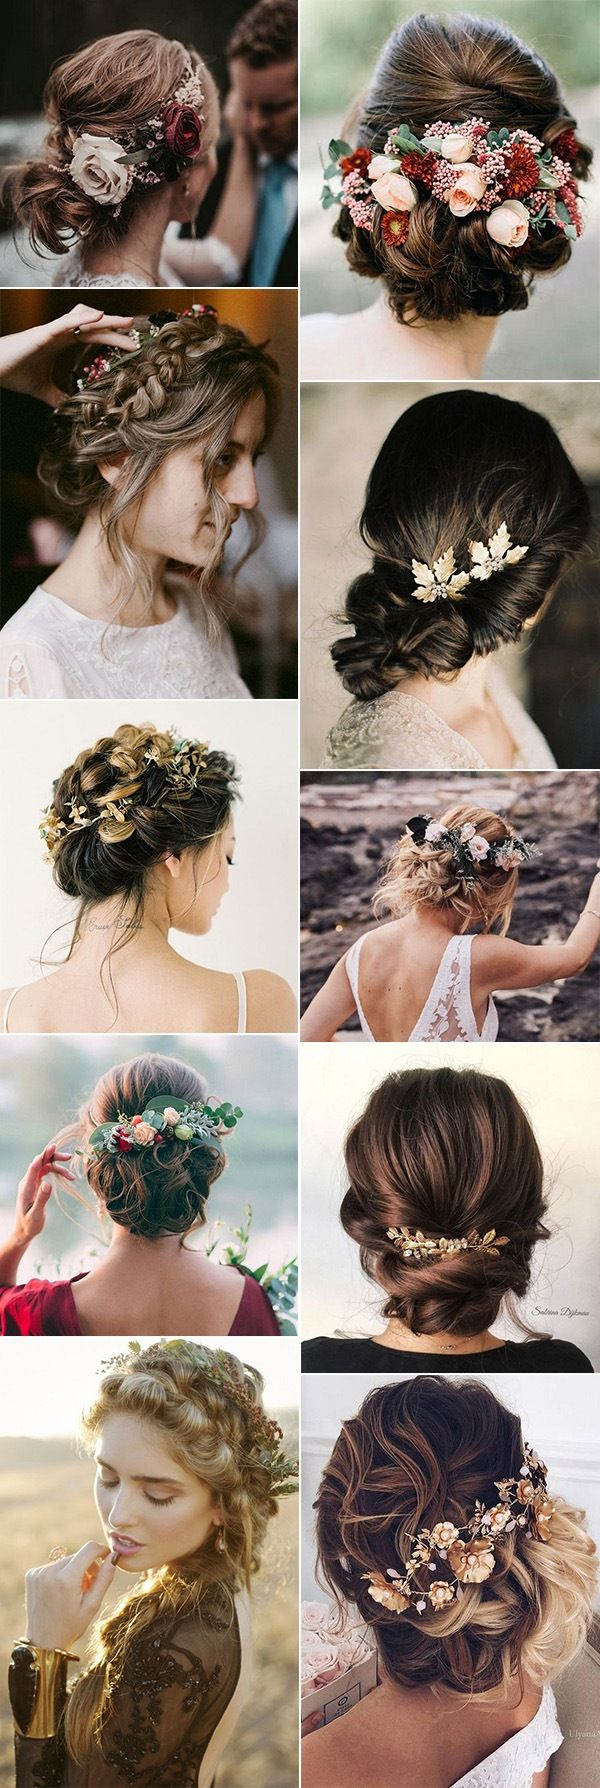 18 Pretty Fall Wedding Hairstyles That Inspire